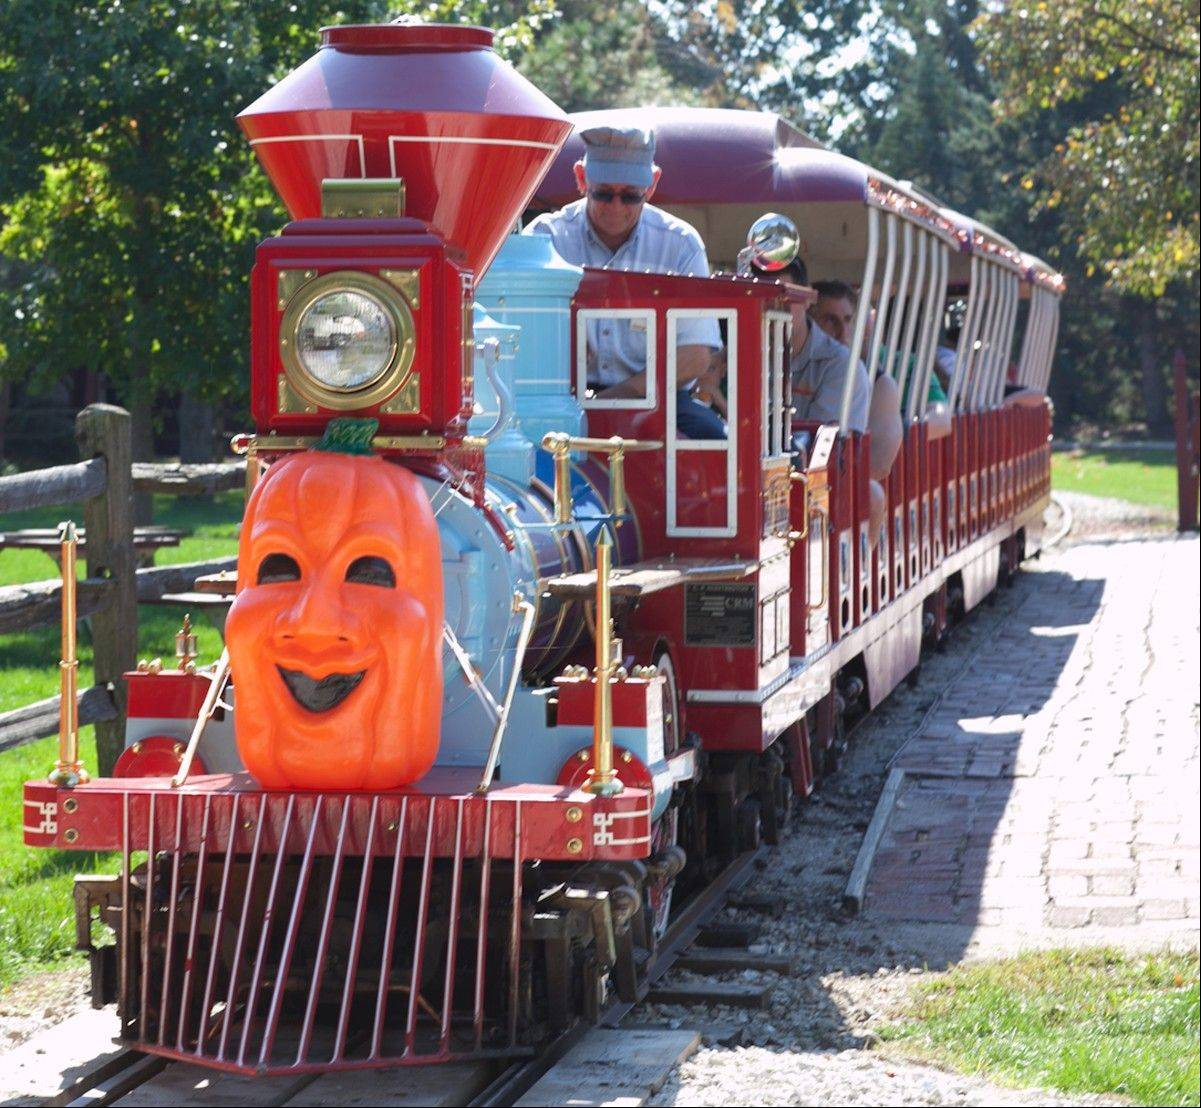 The Pumpkin Train is a highlight at Blackberry Farm during Pumpkin Weekends, which begin Saturday, Oct. 5, and run every weekend (and Columbus Day) through October.